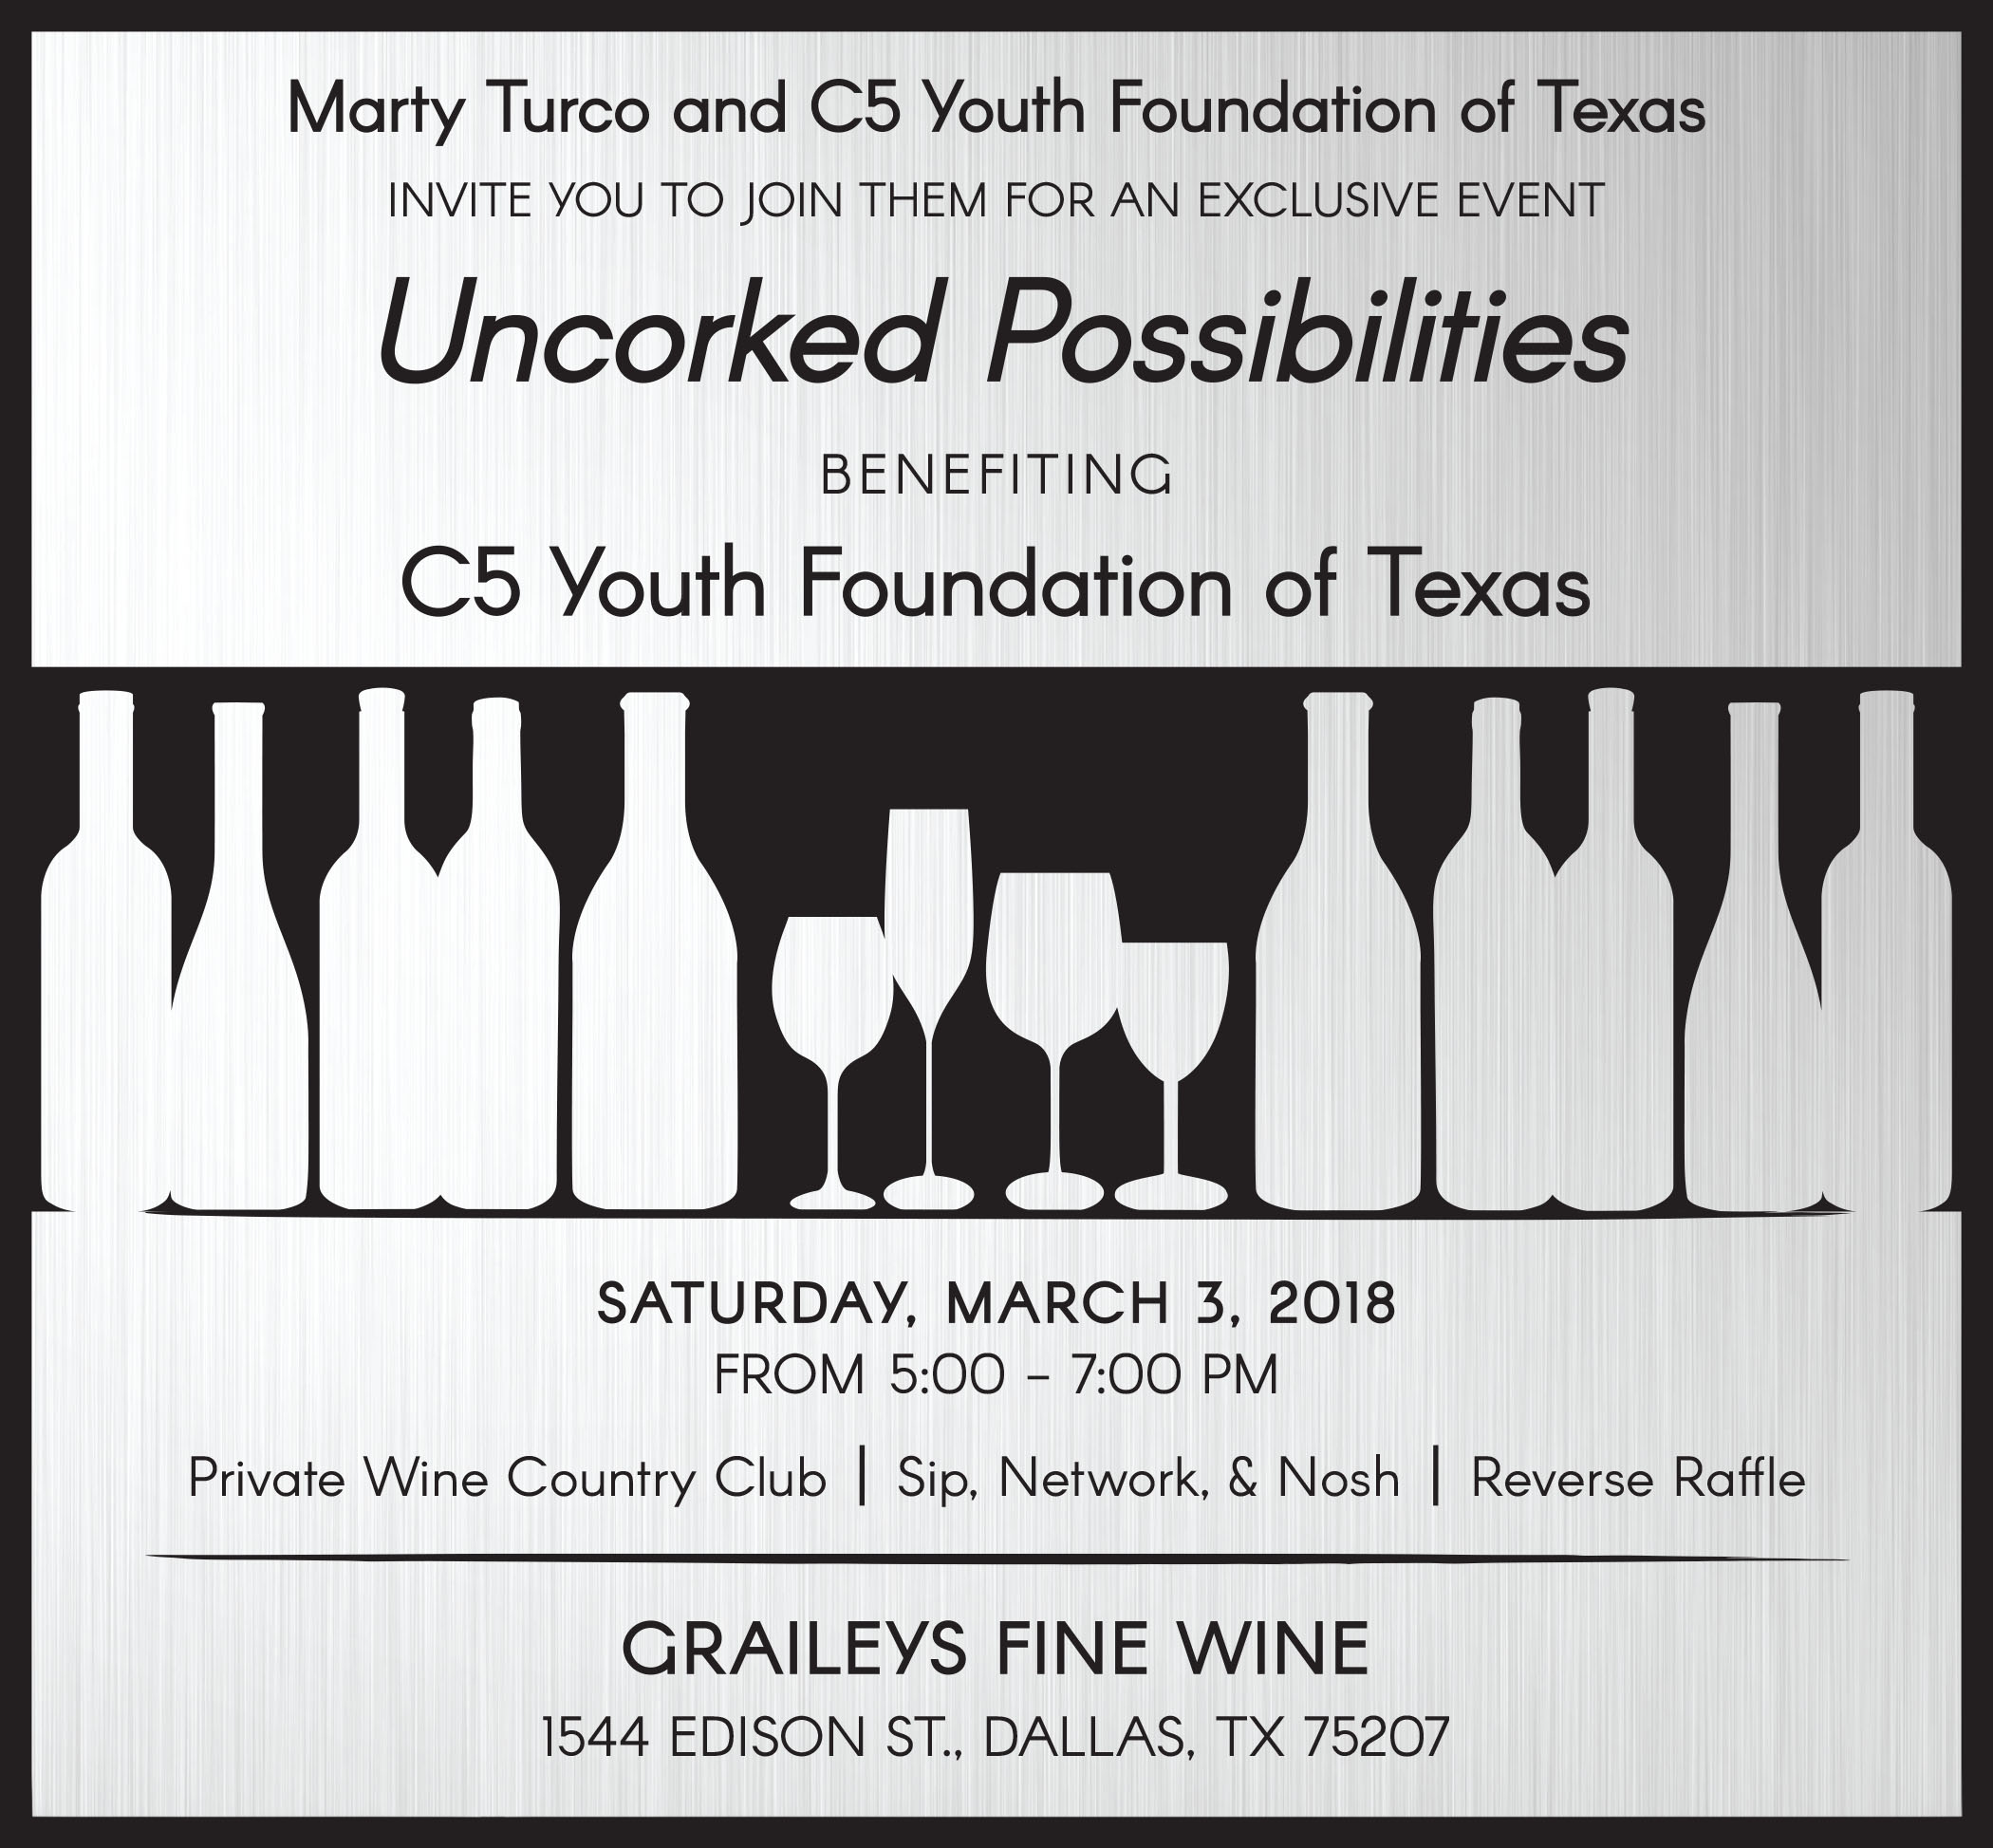 UNCORKED POSSIBILITES